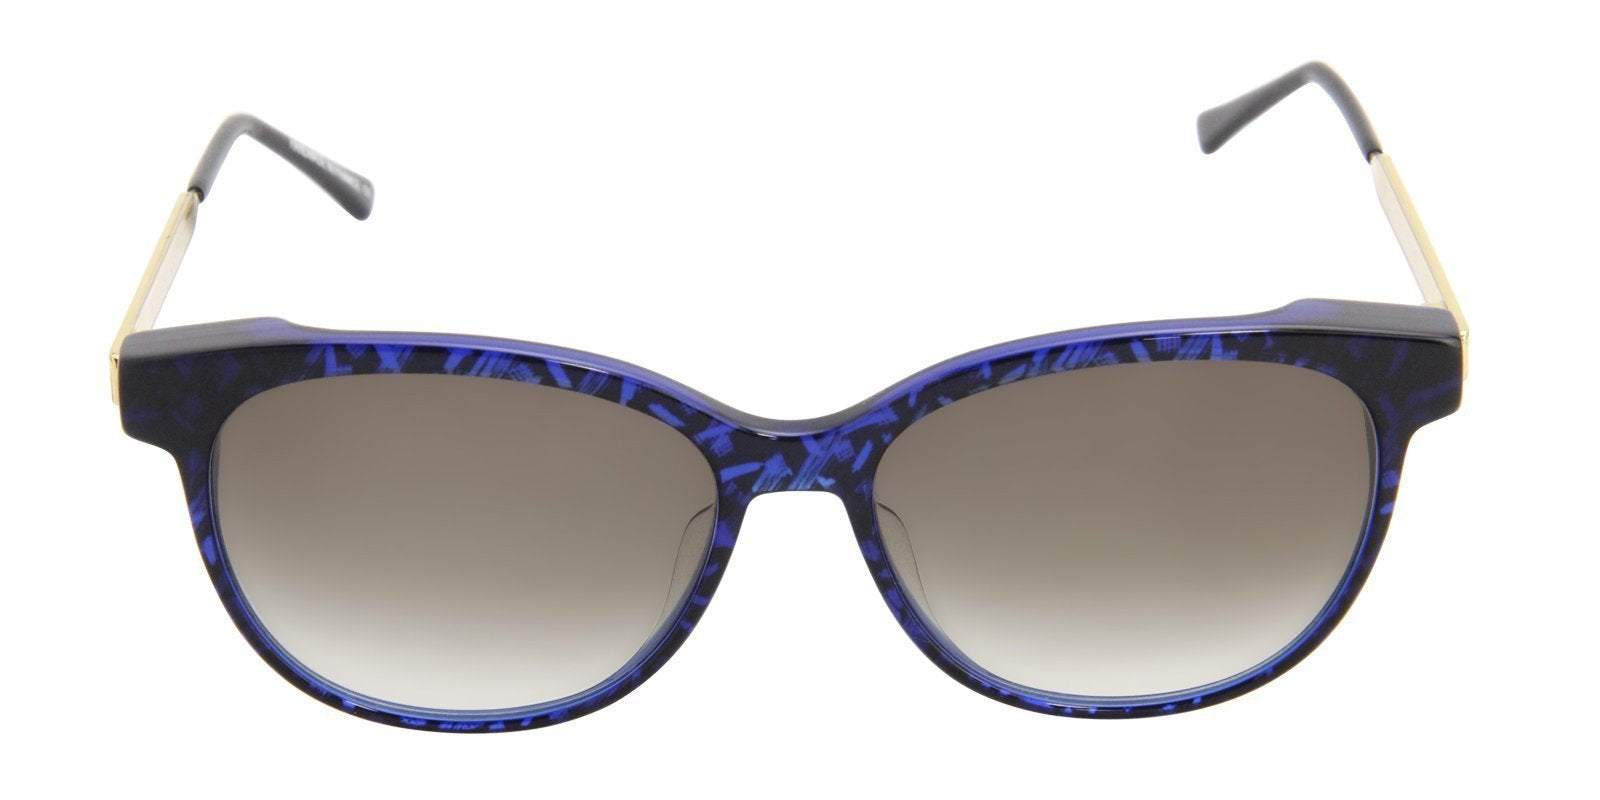 Thierry Lasry - Tipsy Blue Oval Women Sunglasses - 56mm-Sunglasses-Designer Eyes